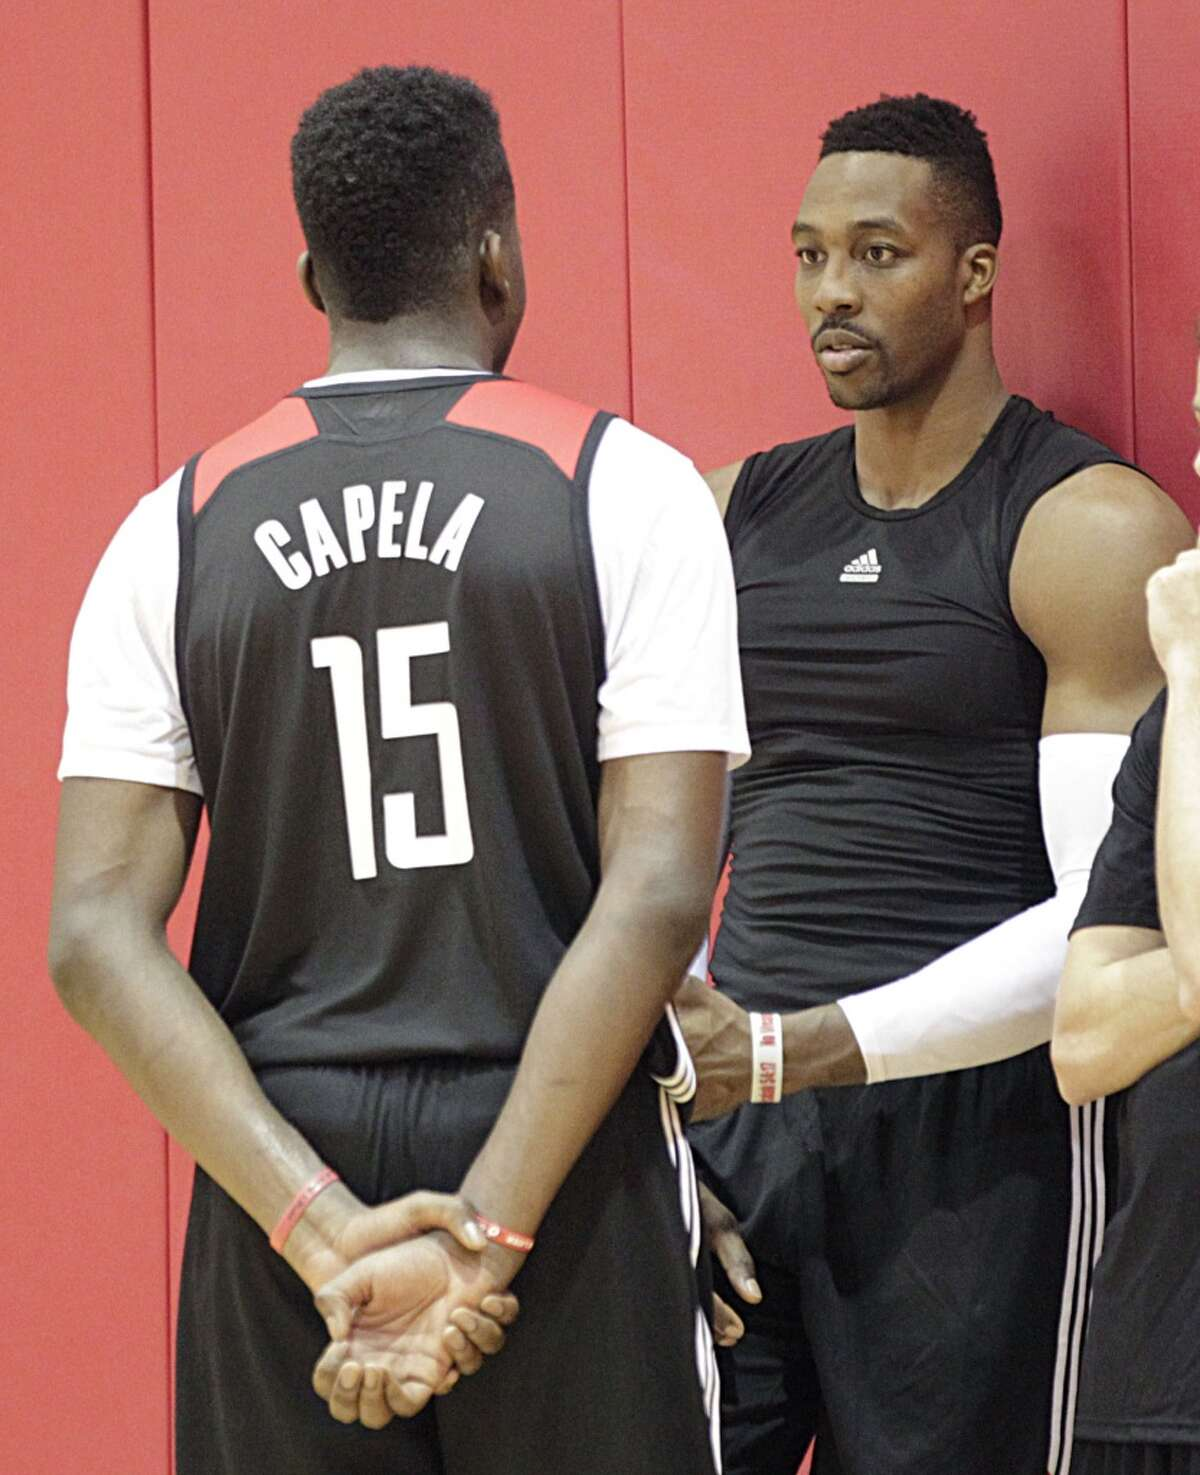 Houston Rockets center Clint Capela left, and Rockets center Dwight Howard right, during the Rockets practice at the Toyota Center Tuesday, Sept. 29, 2015, in Houston. ( James Nielsen / Houston Chronicle )